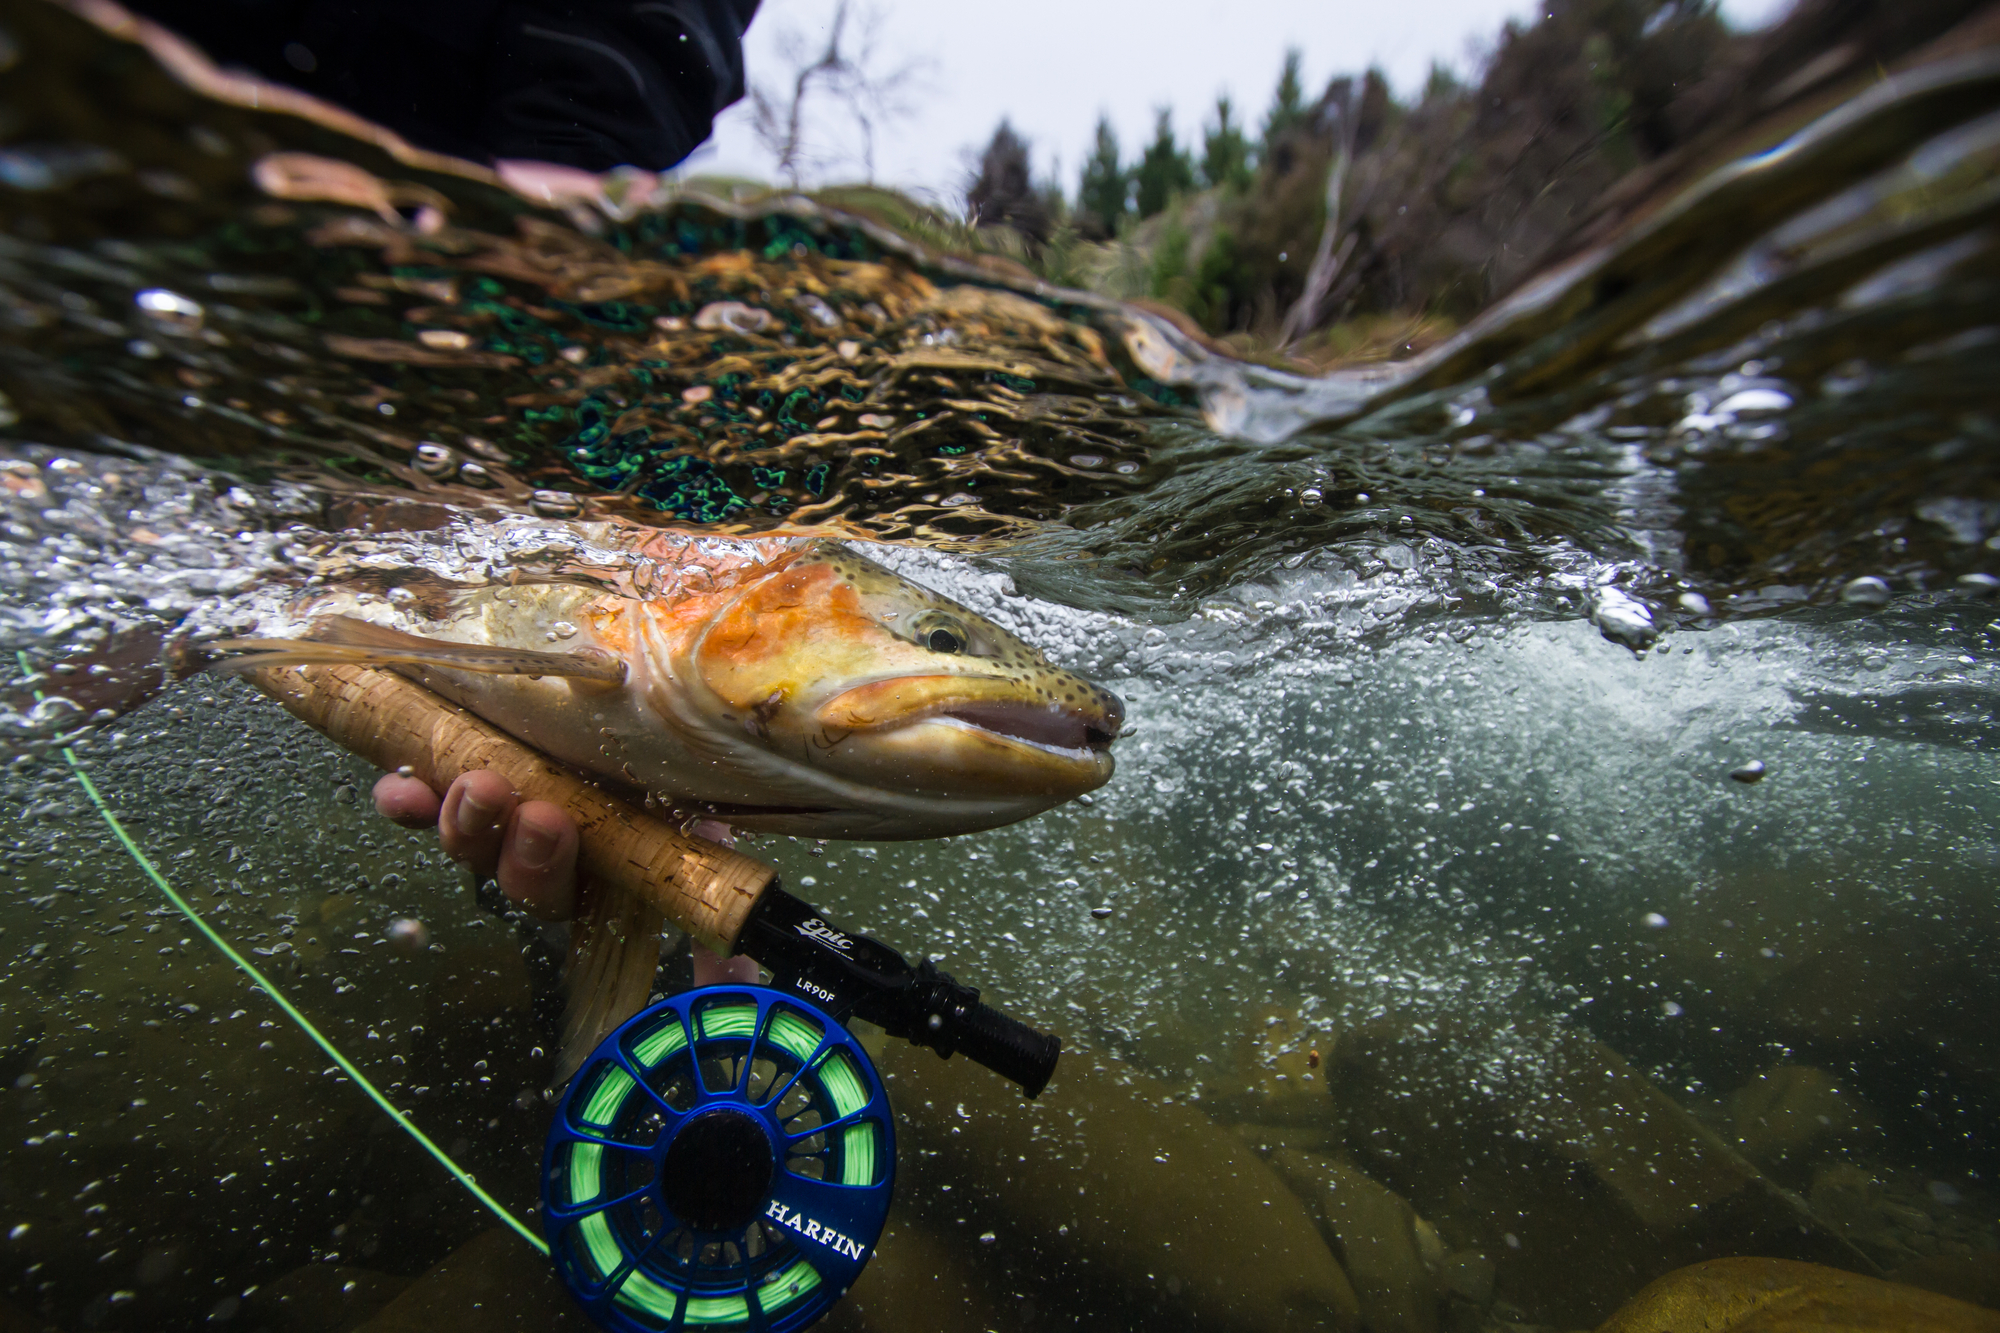 Kiwi Stu Hastie is evidently in the photo contest business. And that's fine. Stu takes his time crafting compelling images that we only want to see more of, like this one of a rainbow trout from Bush Creek in New Zealand.